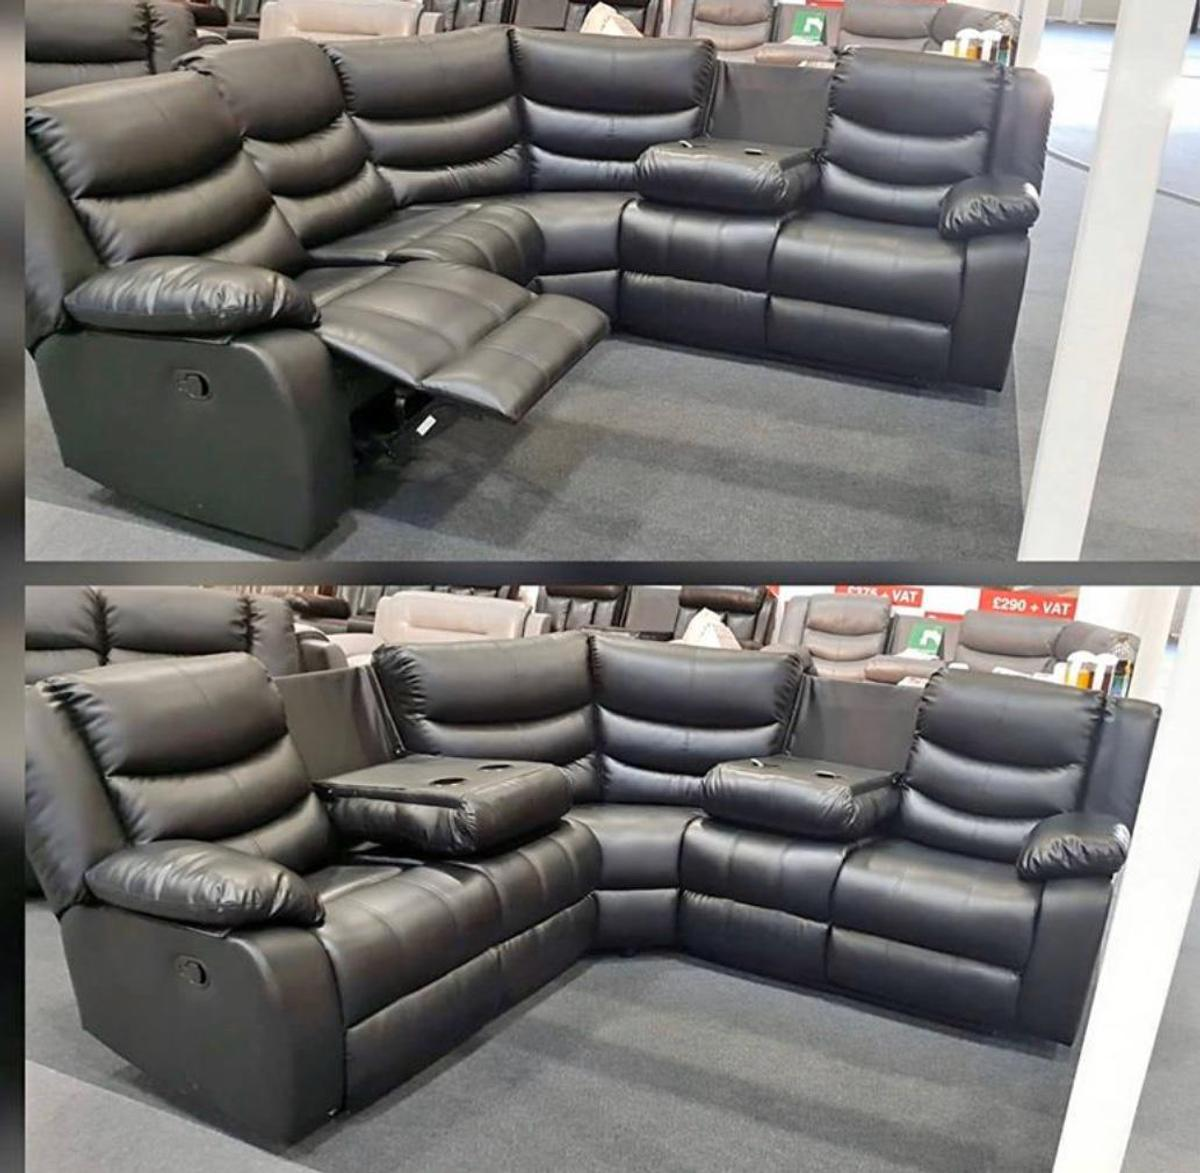 Roma 3 2 Seater Sofa Recliner Bonded Leather In Bd1 Bradford For 550 00 For Sale Shpock